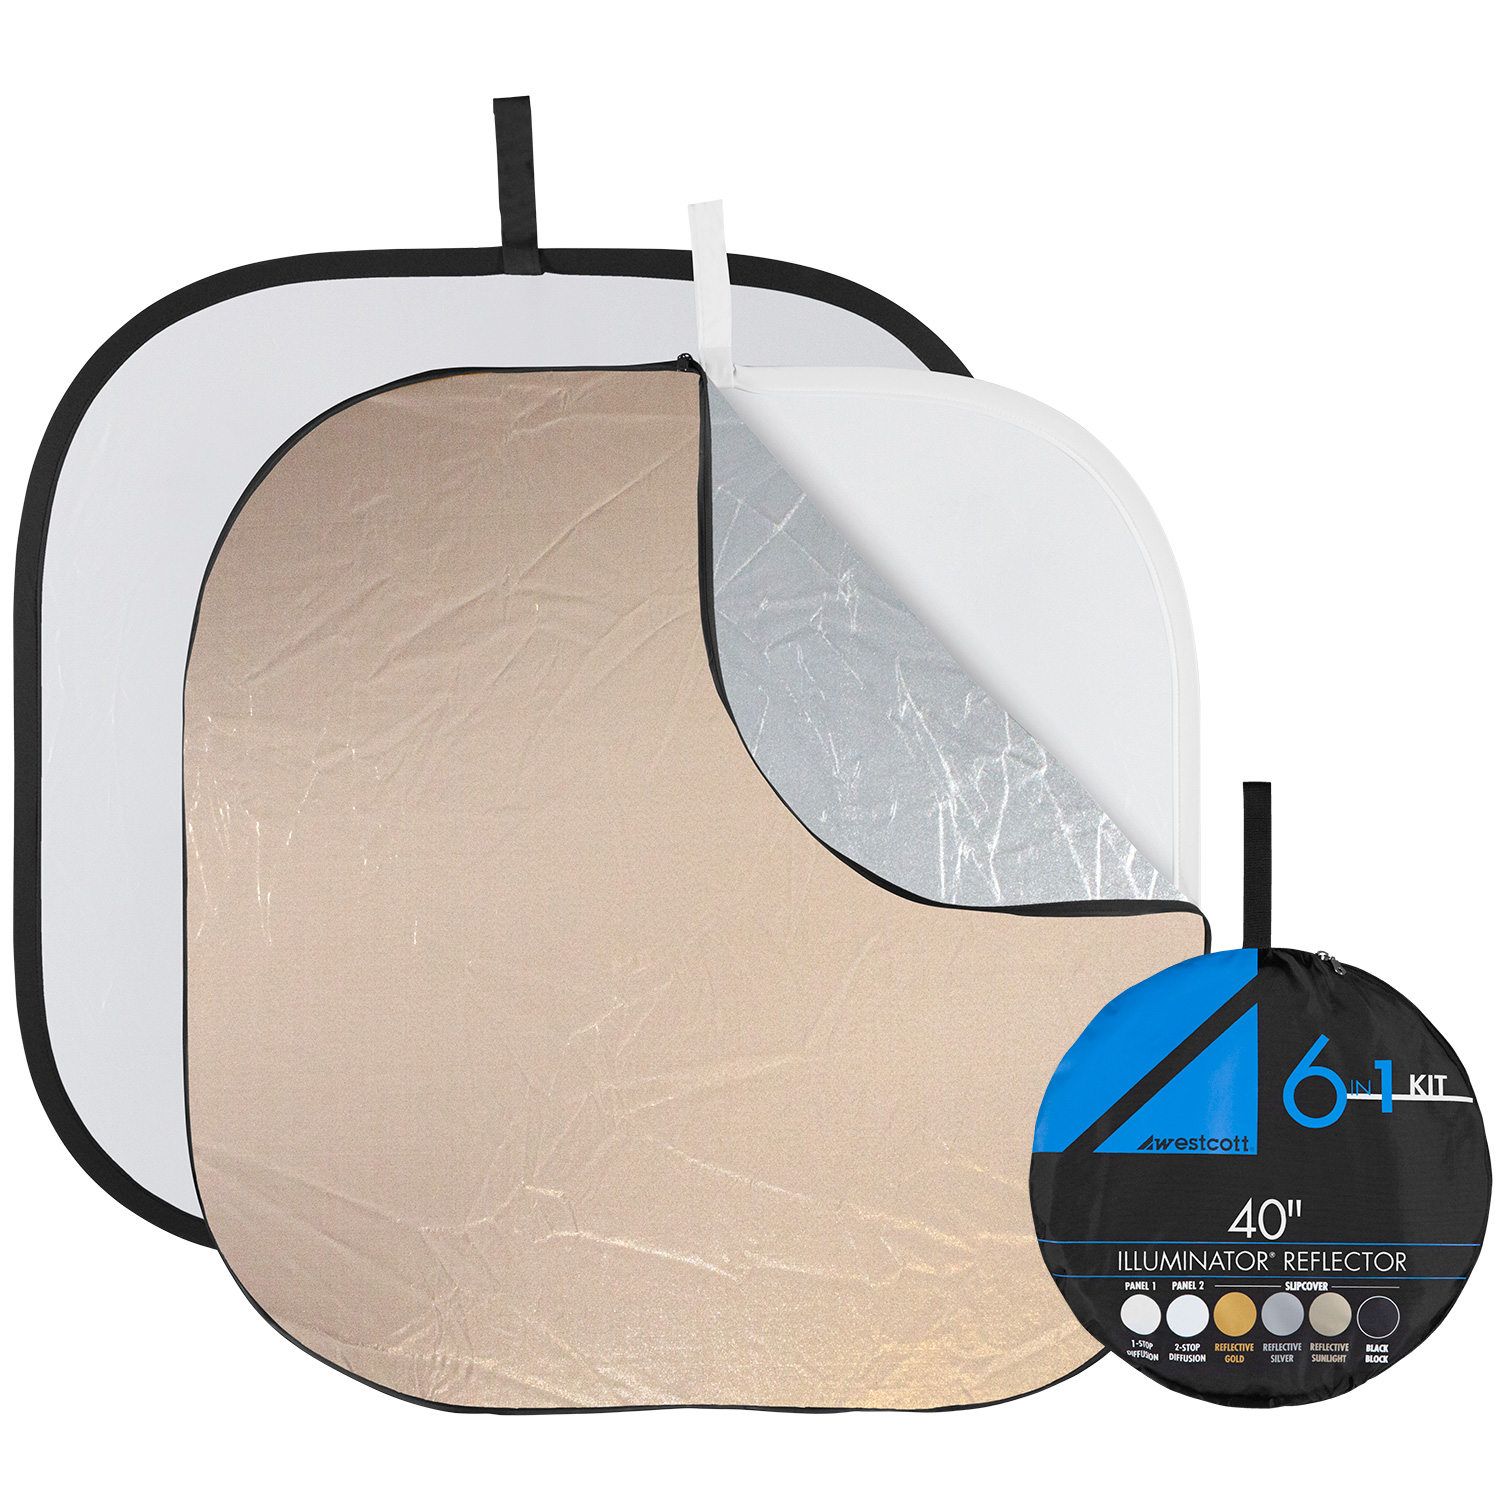 Illuminator Collapsible 6-in-1 Reflector Kit (40-in.)